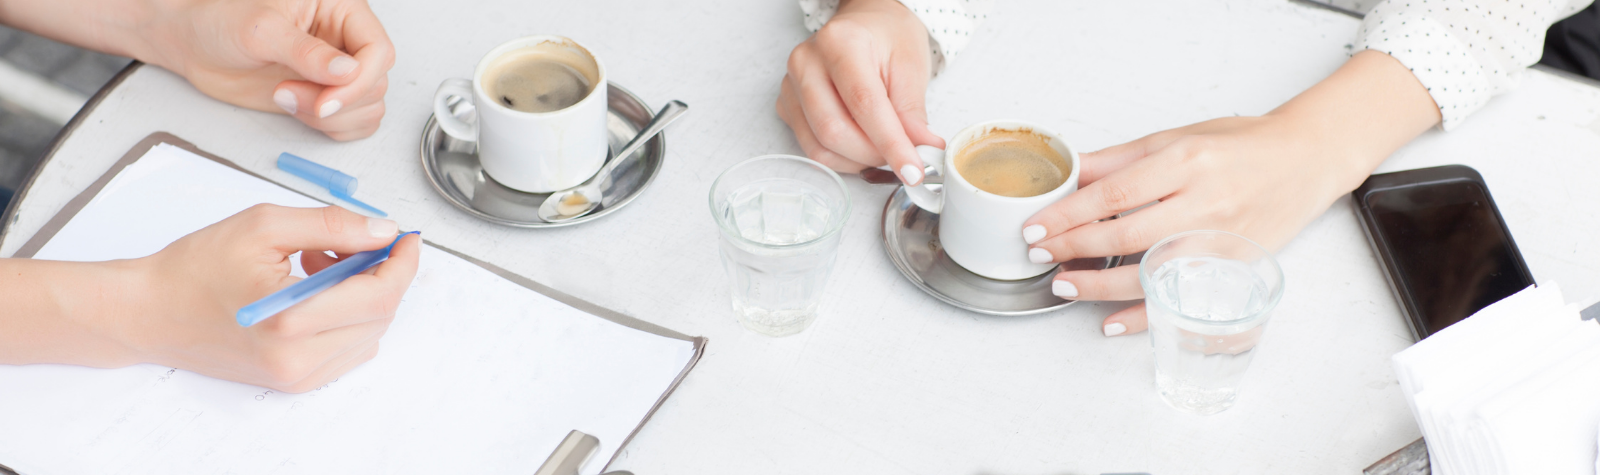 5 Advantages of Having Coffee in the Workplace